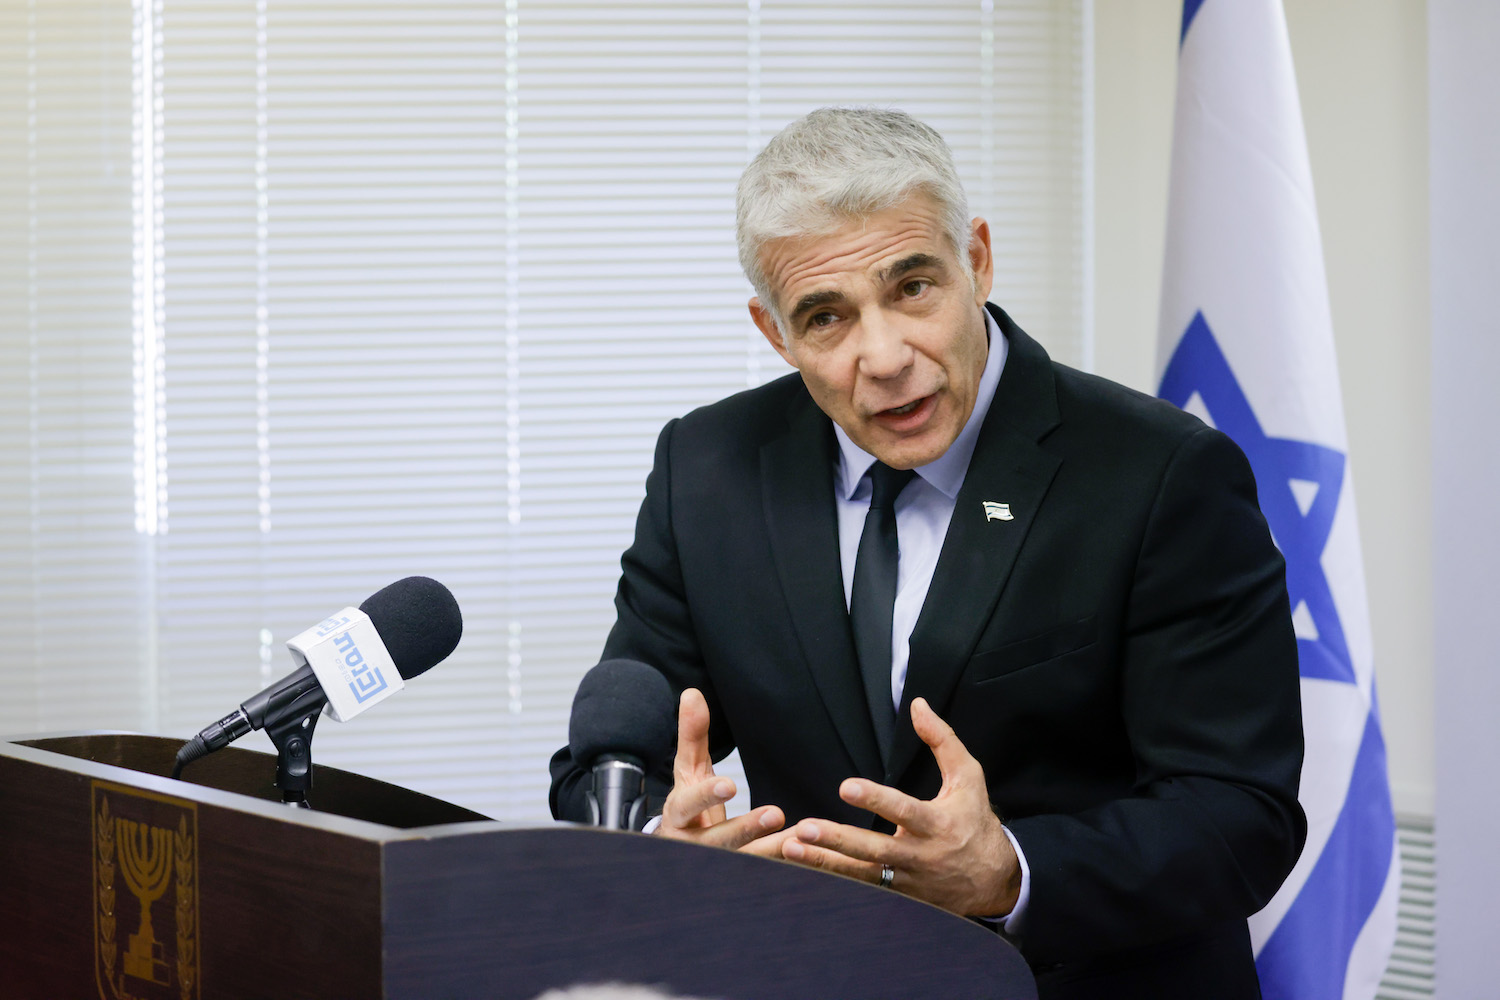 Foreign Minister Yair Lapid speaks during a Yesh Atid party meeting at the Knesset, Jerusalem, June 21, 2021. (Olivier Fitoussi/Flash90)